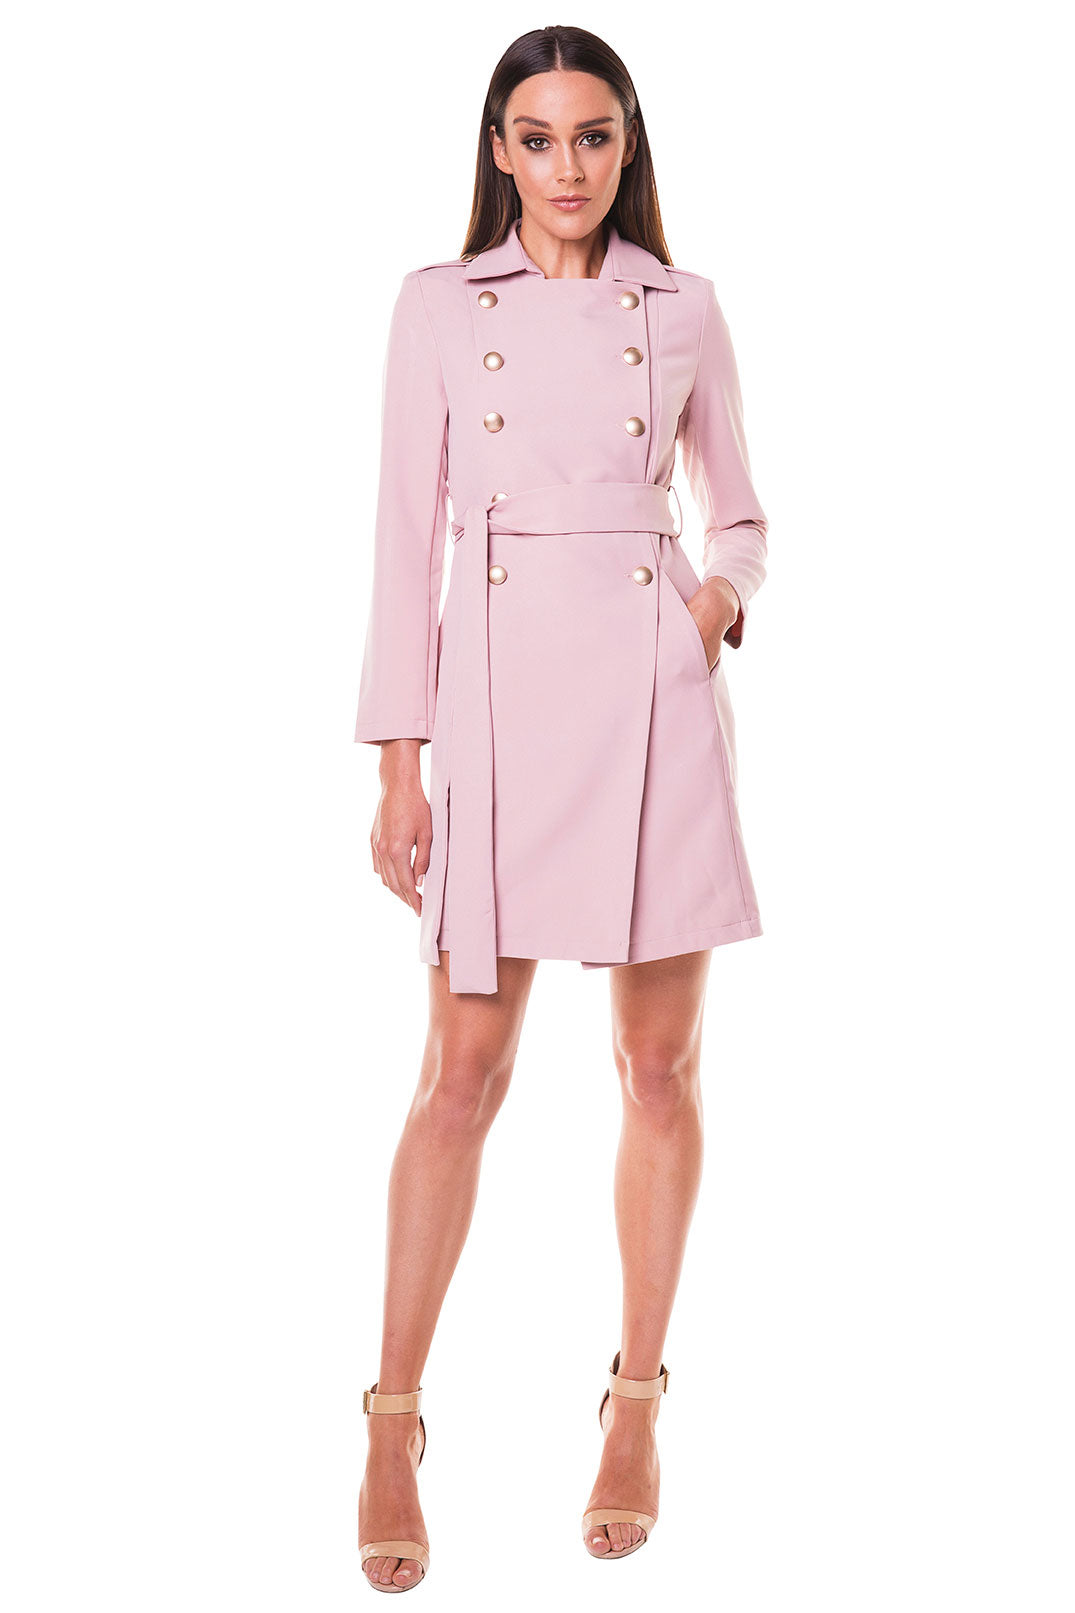 Cora Trench Coat - Blush